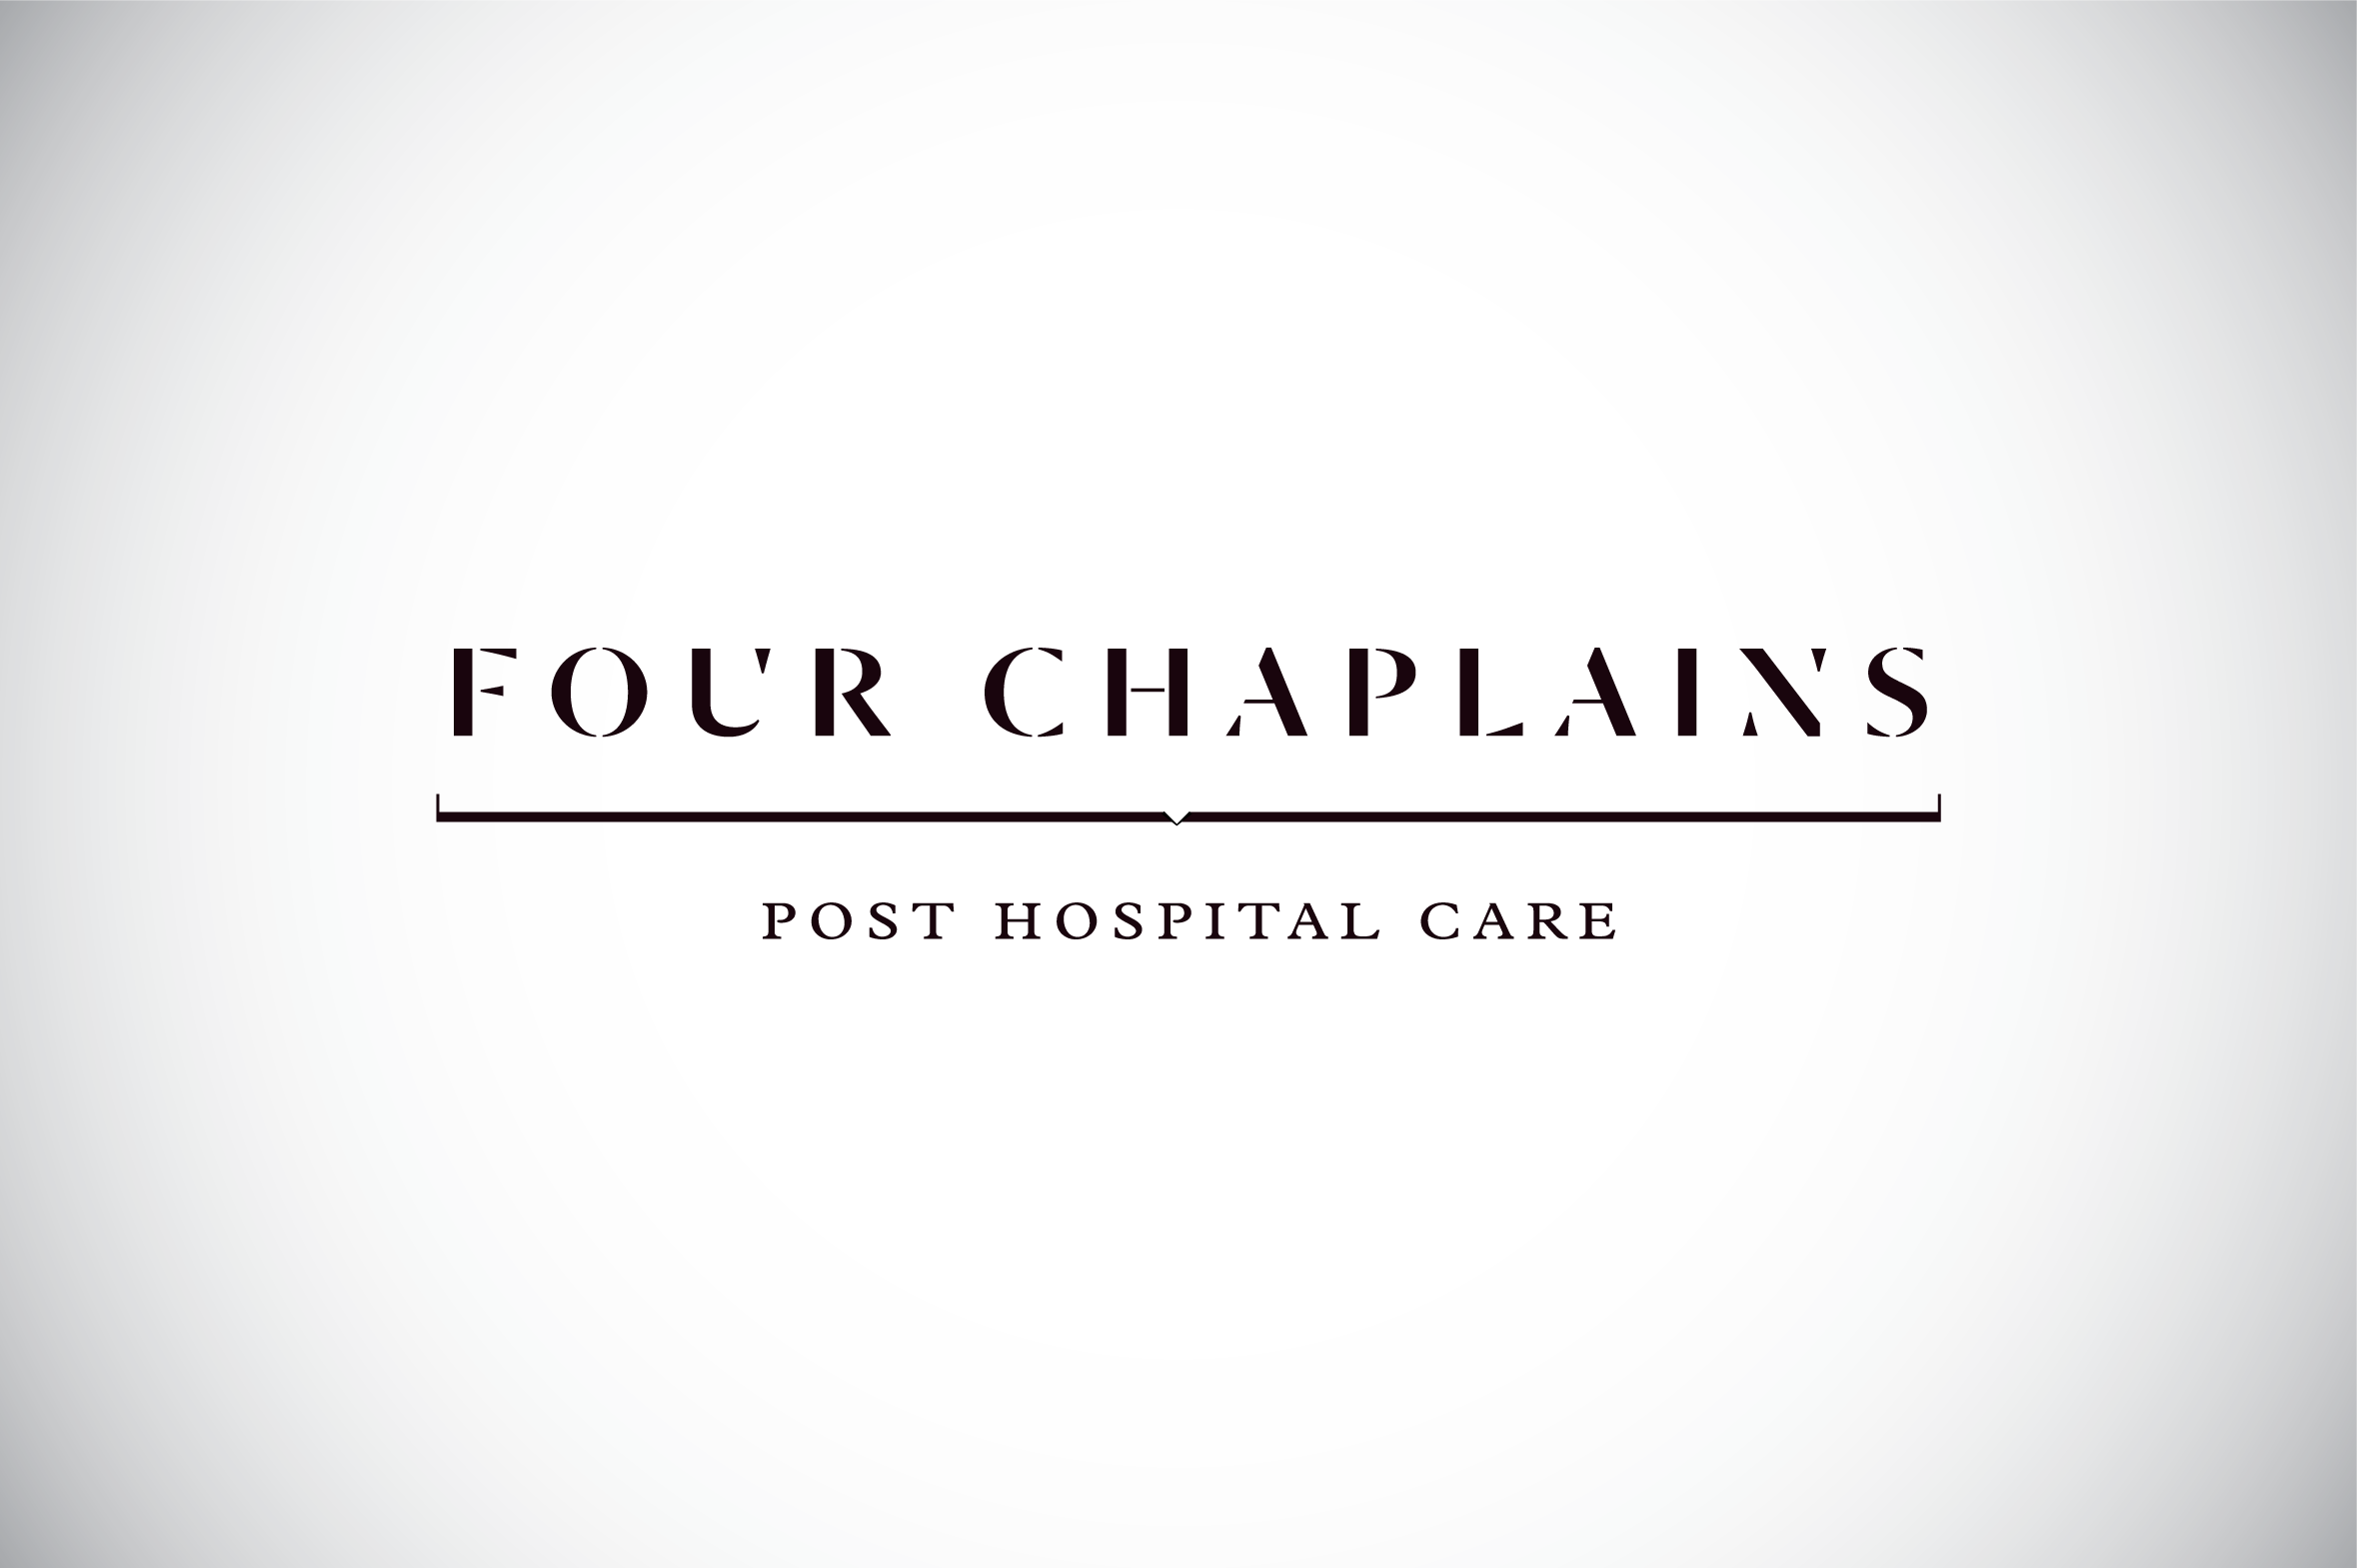 NEXTCARE - TYPE TREATMENT #6 - FOUR CHAPLAINS